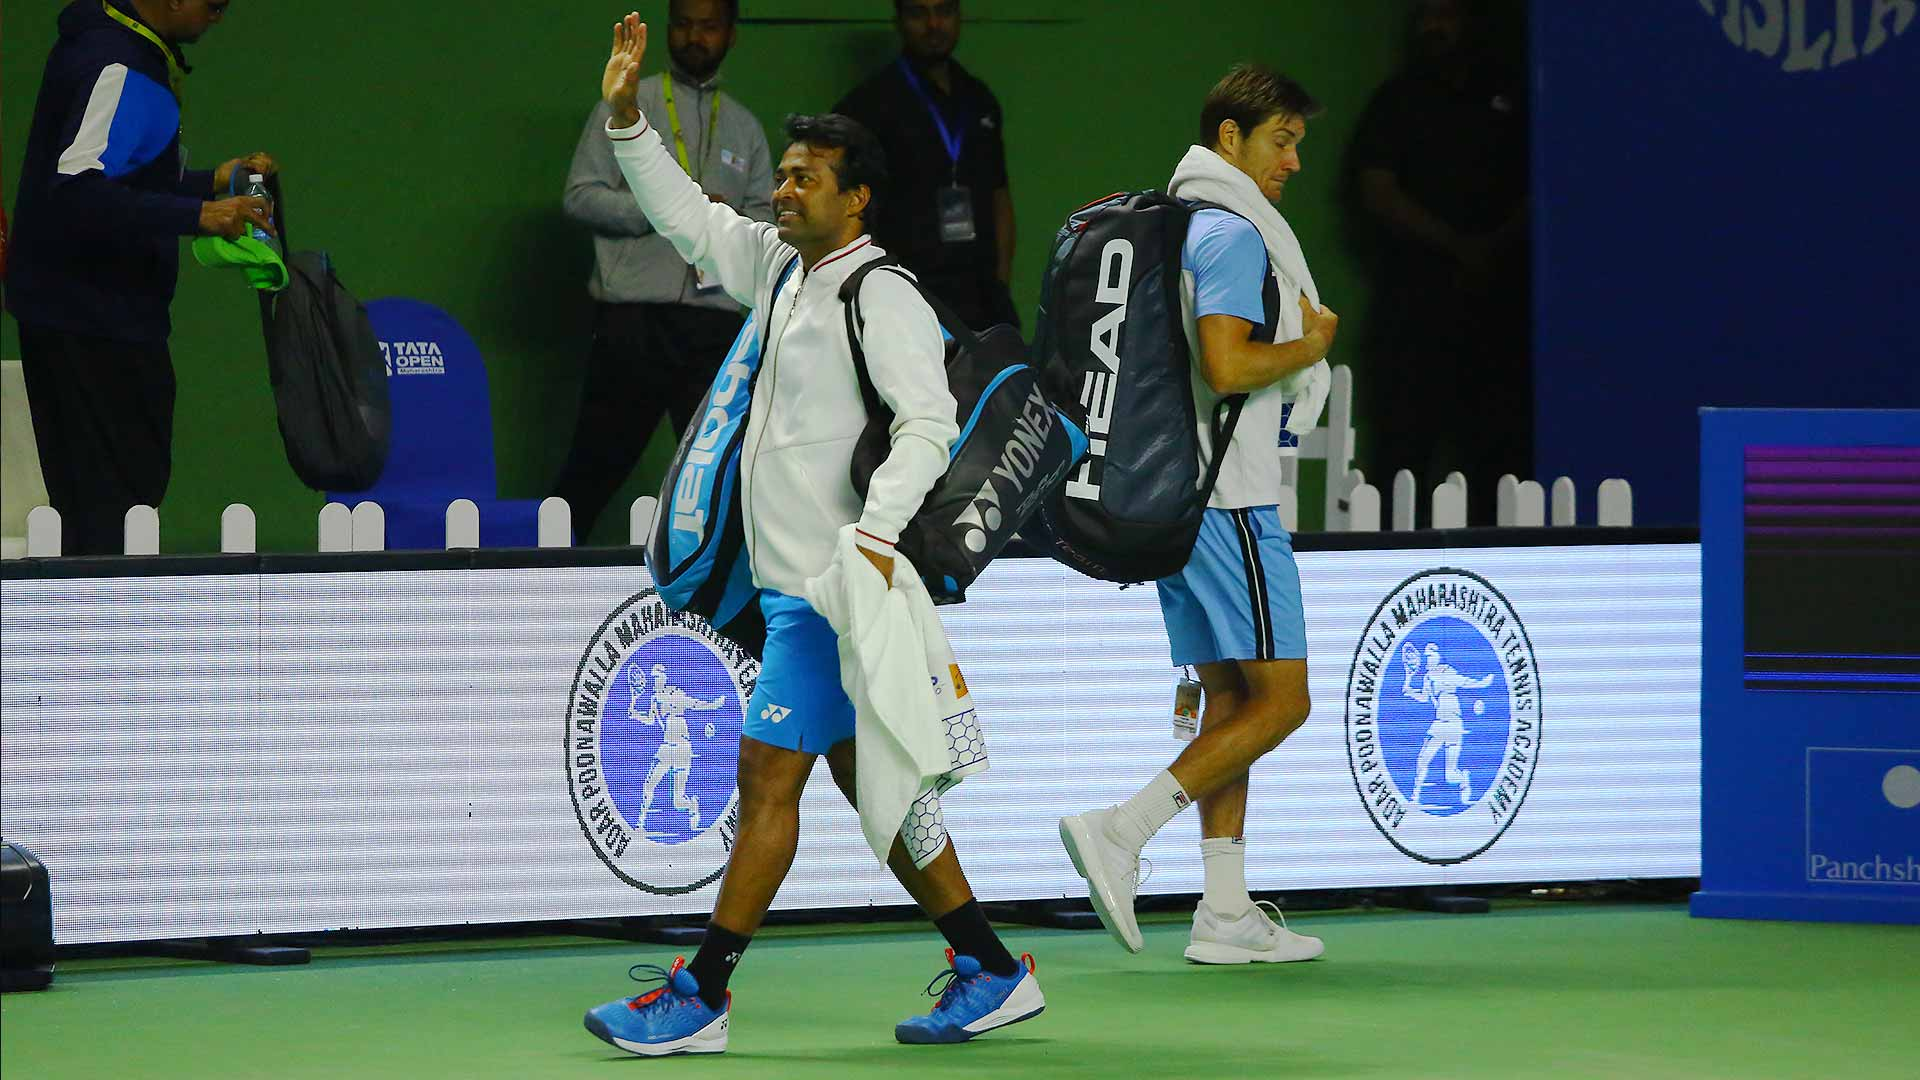 <a href='https://www.atptour.com/en/players/leander-paes/p269/overview'>Leander Paes</a> bids farewell at his home country tournament, after he and <a href='https://www.atptour.com/en/players/matthew-ebden/e690/overview'>Matthew Ebden</a> bow out in the Pune quarter-finals.